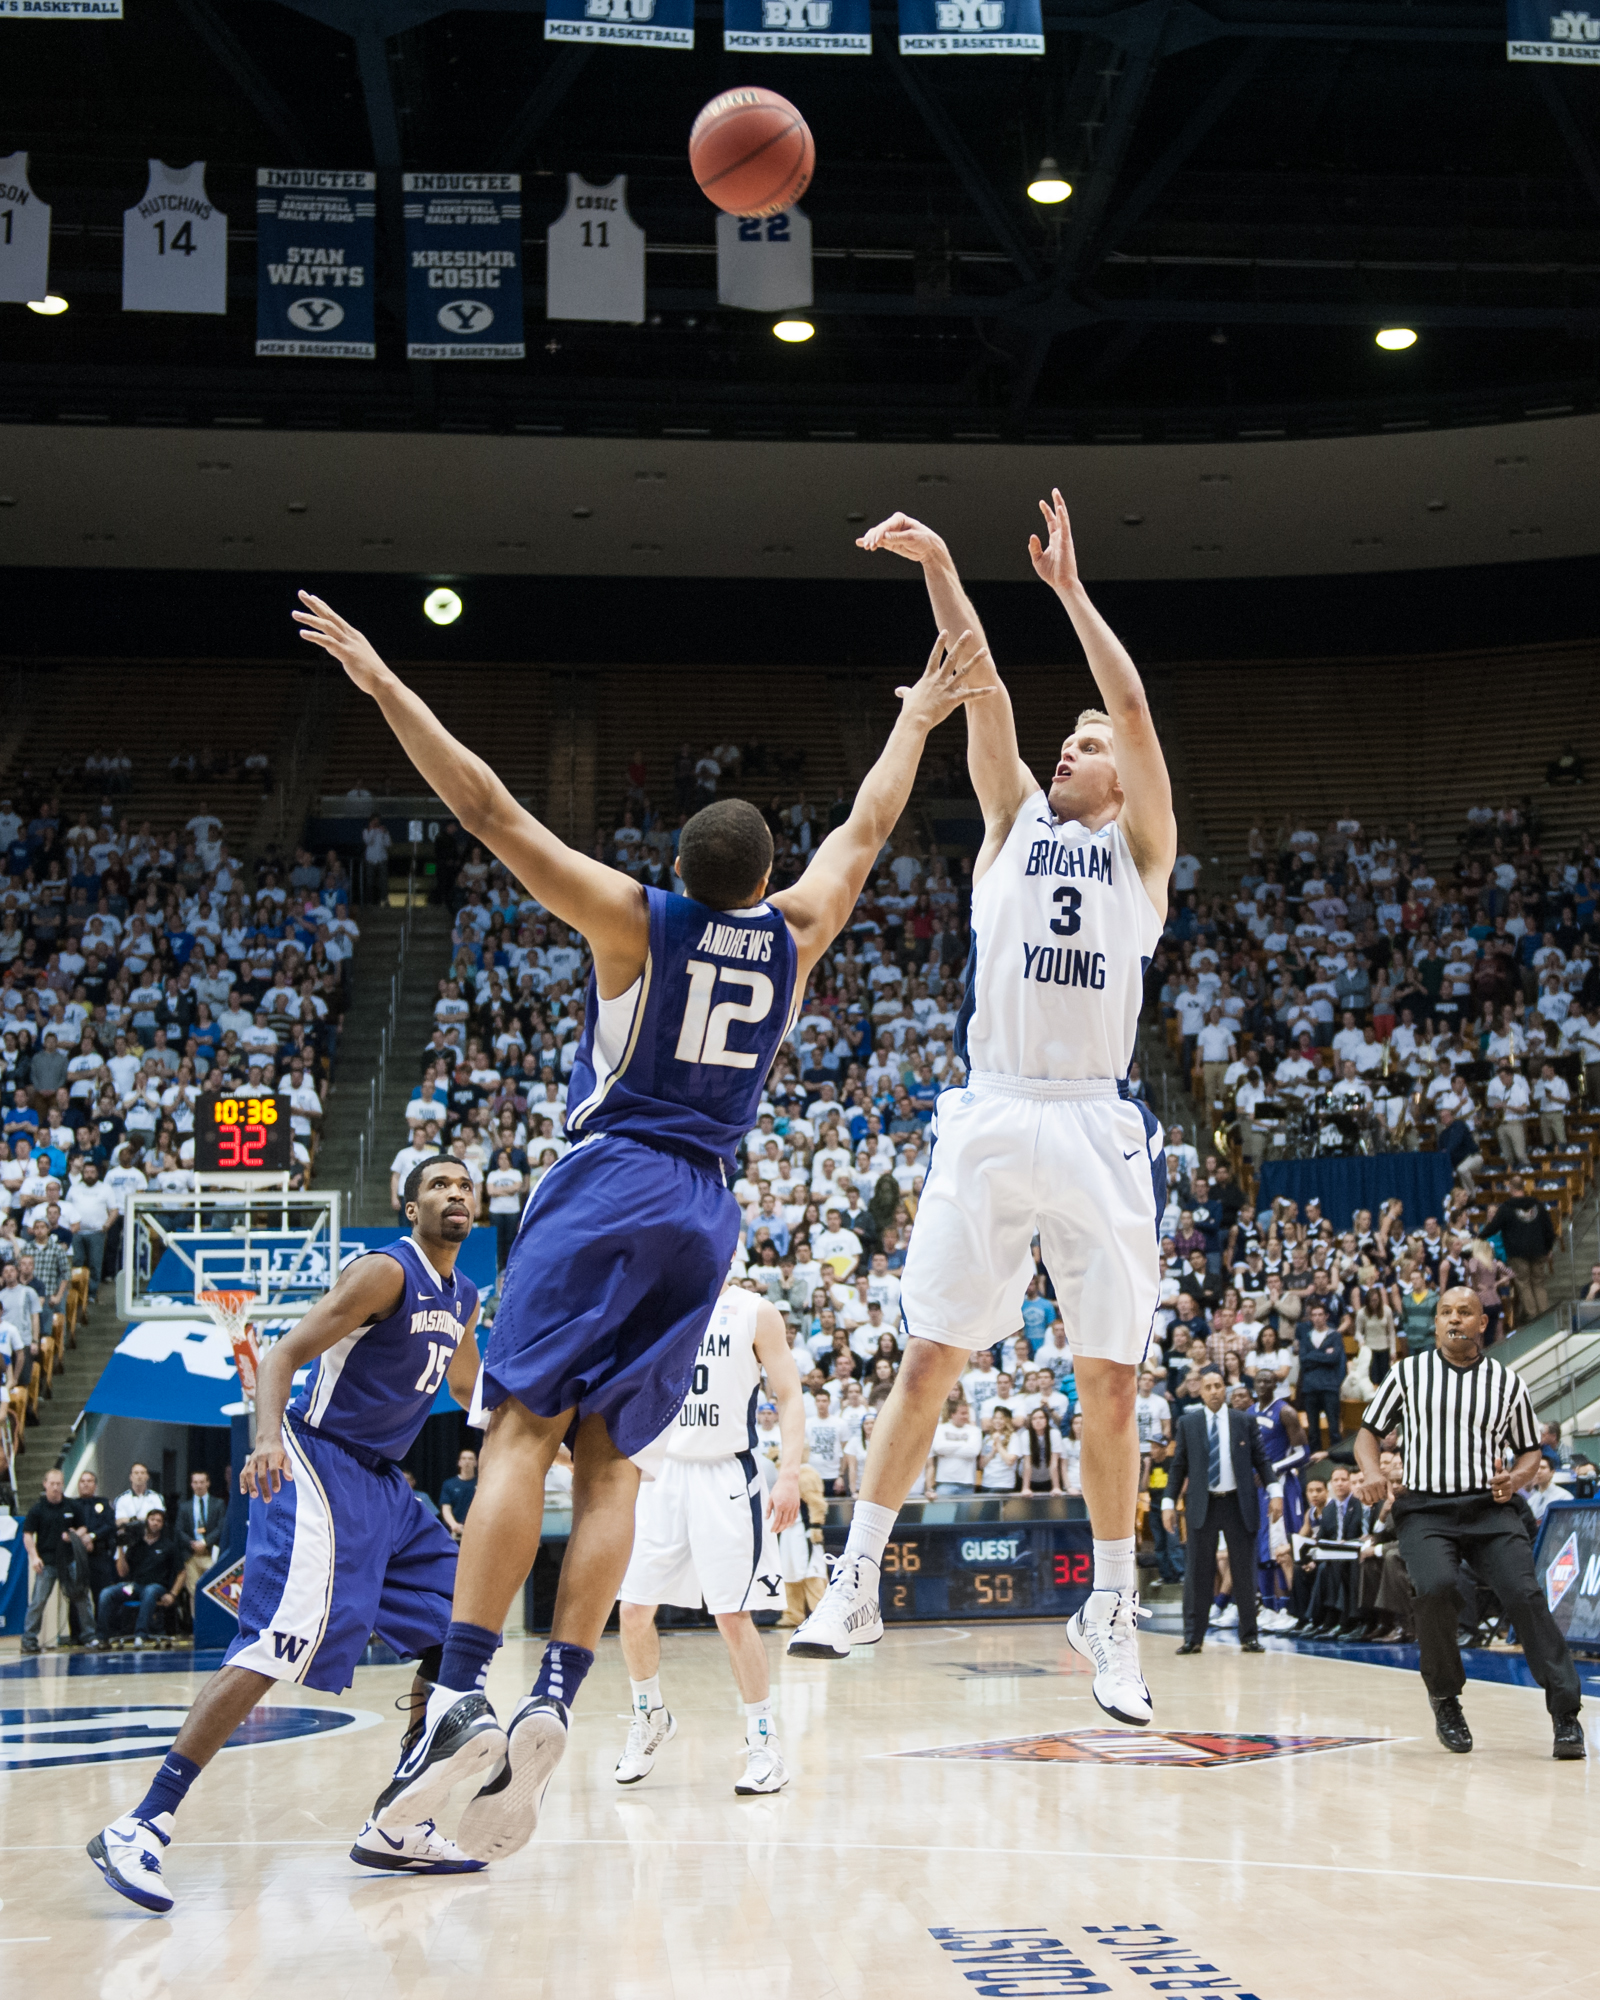 BYU guard Tyler Haws shoots over Washington defender Andrew Andrews during the 2012 NIT tournament. (Photo by Sarah Hill)